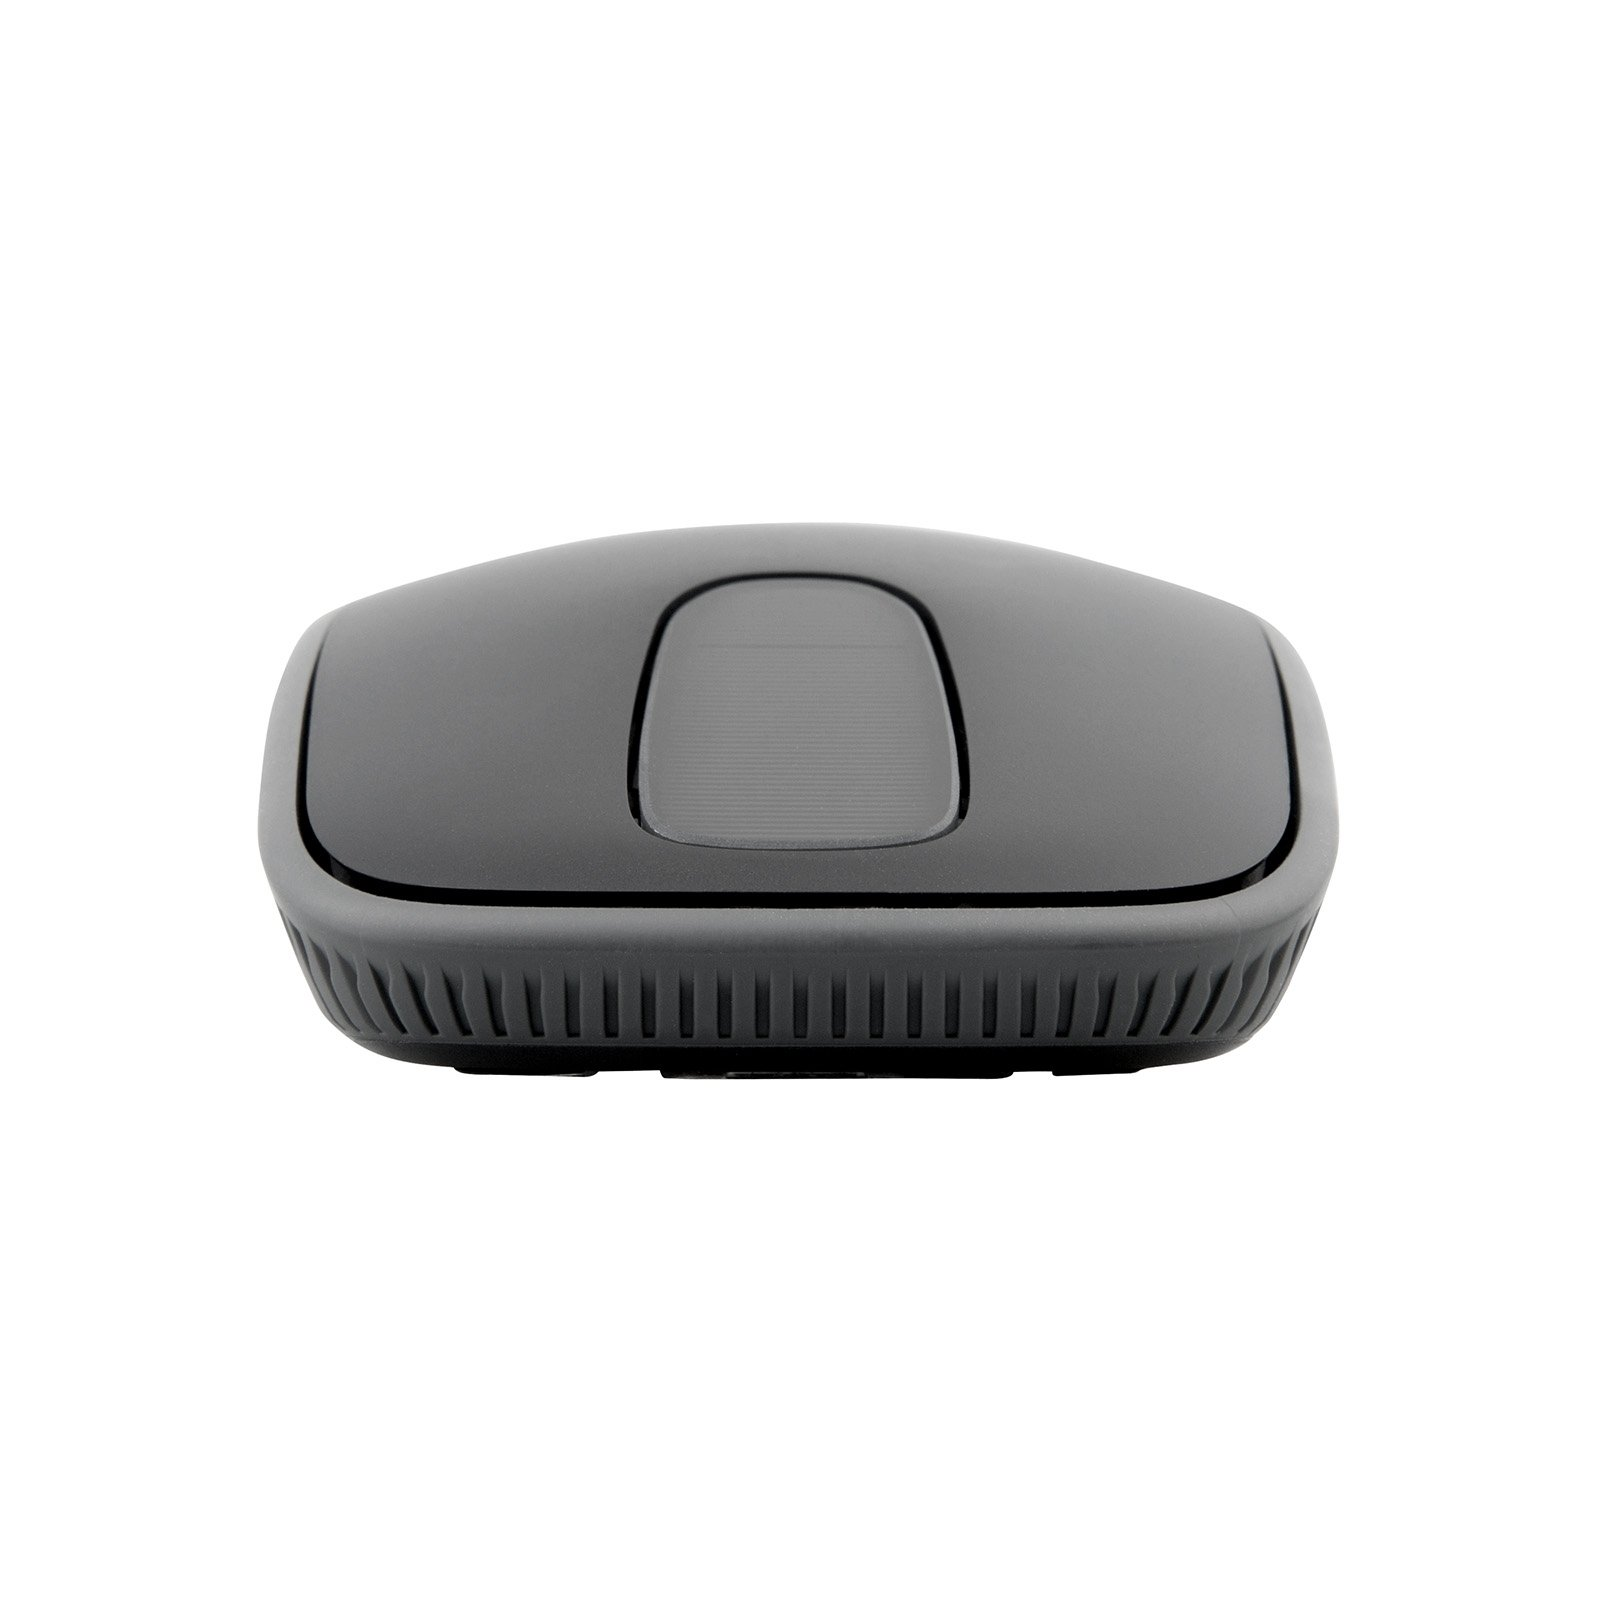 Logitech Zone Touch Mouse T400 for Windows 8 - Black (Certified Refurbished) by Logitech (Image #4)